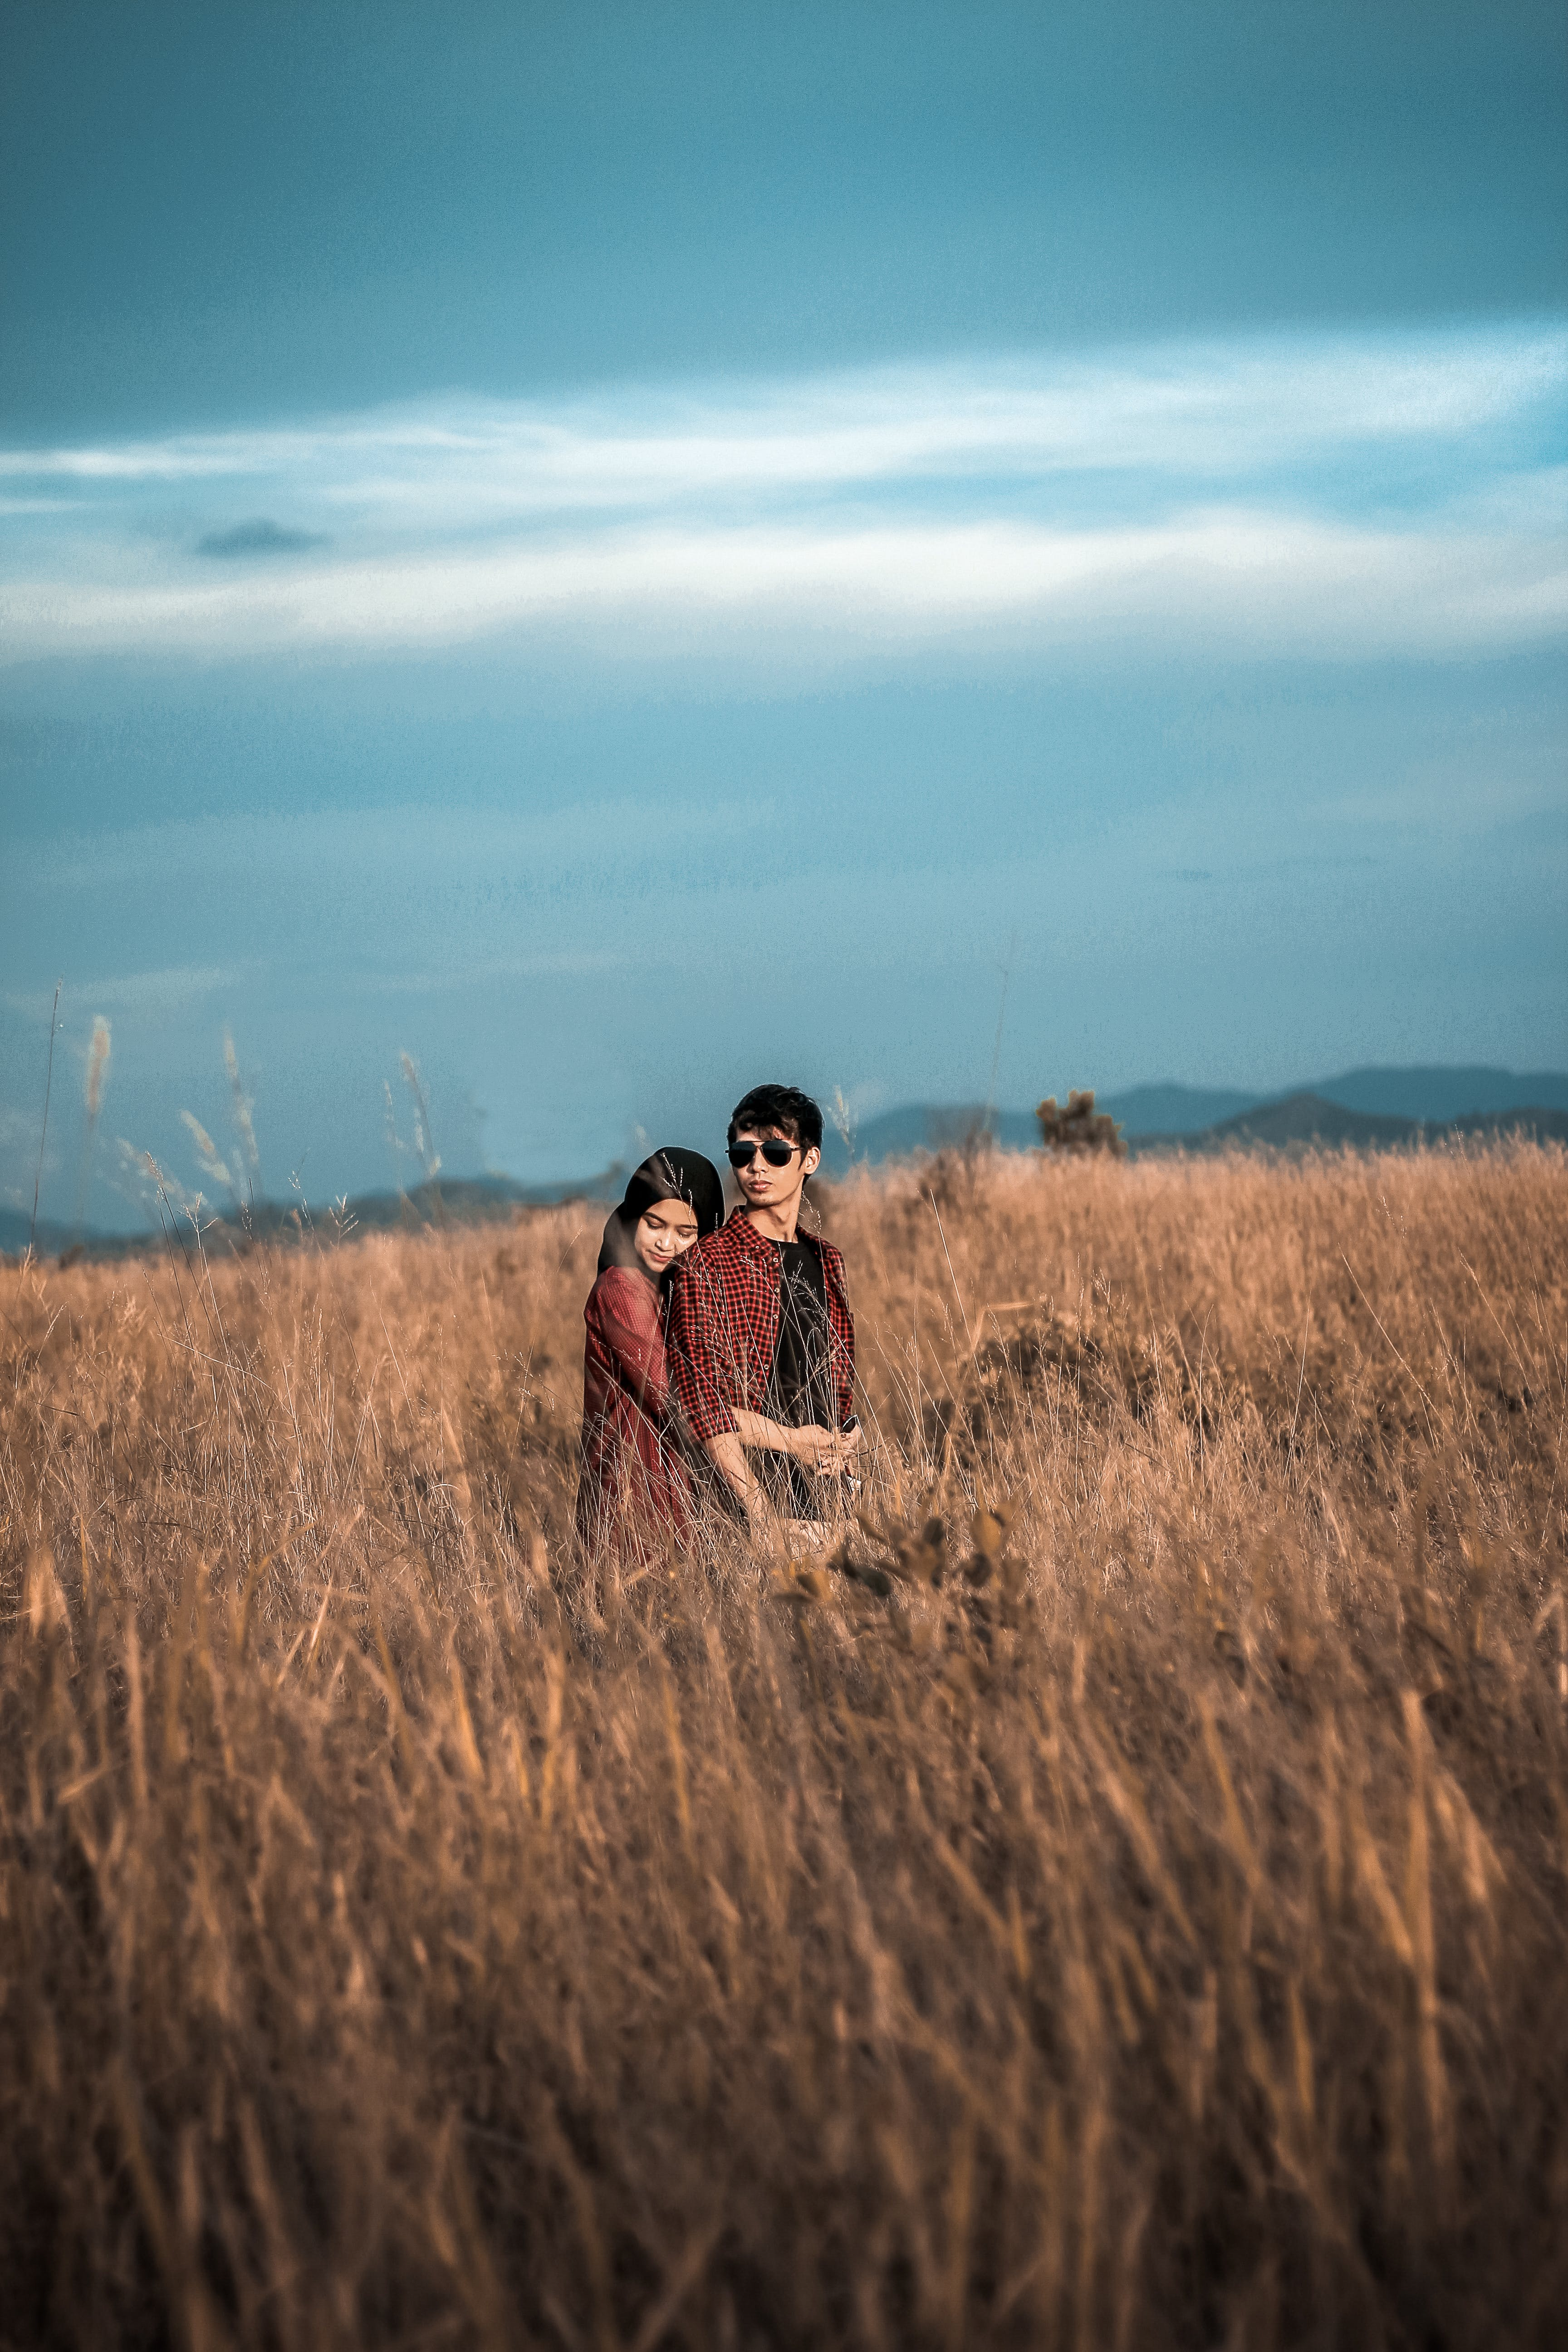 Man and Woman on Grass Field